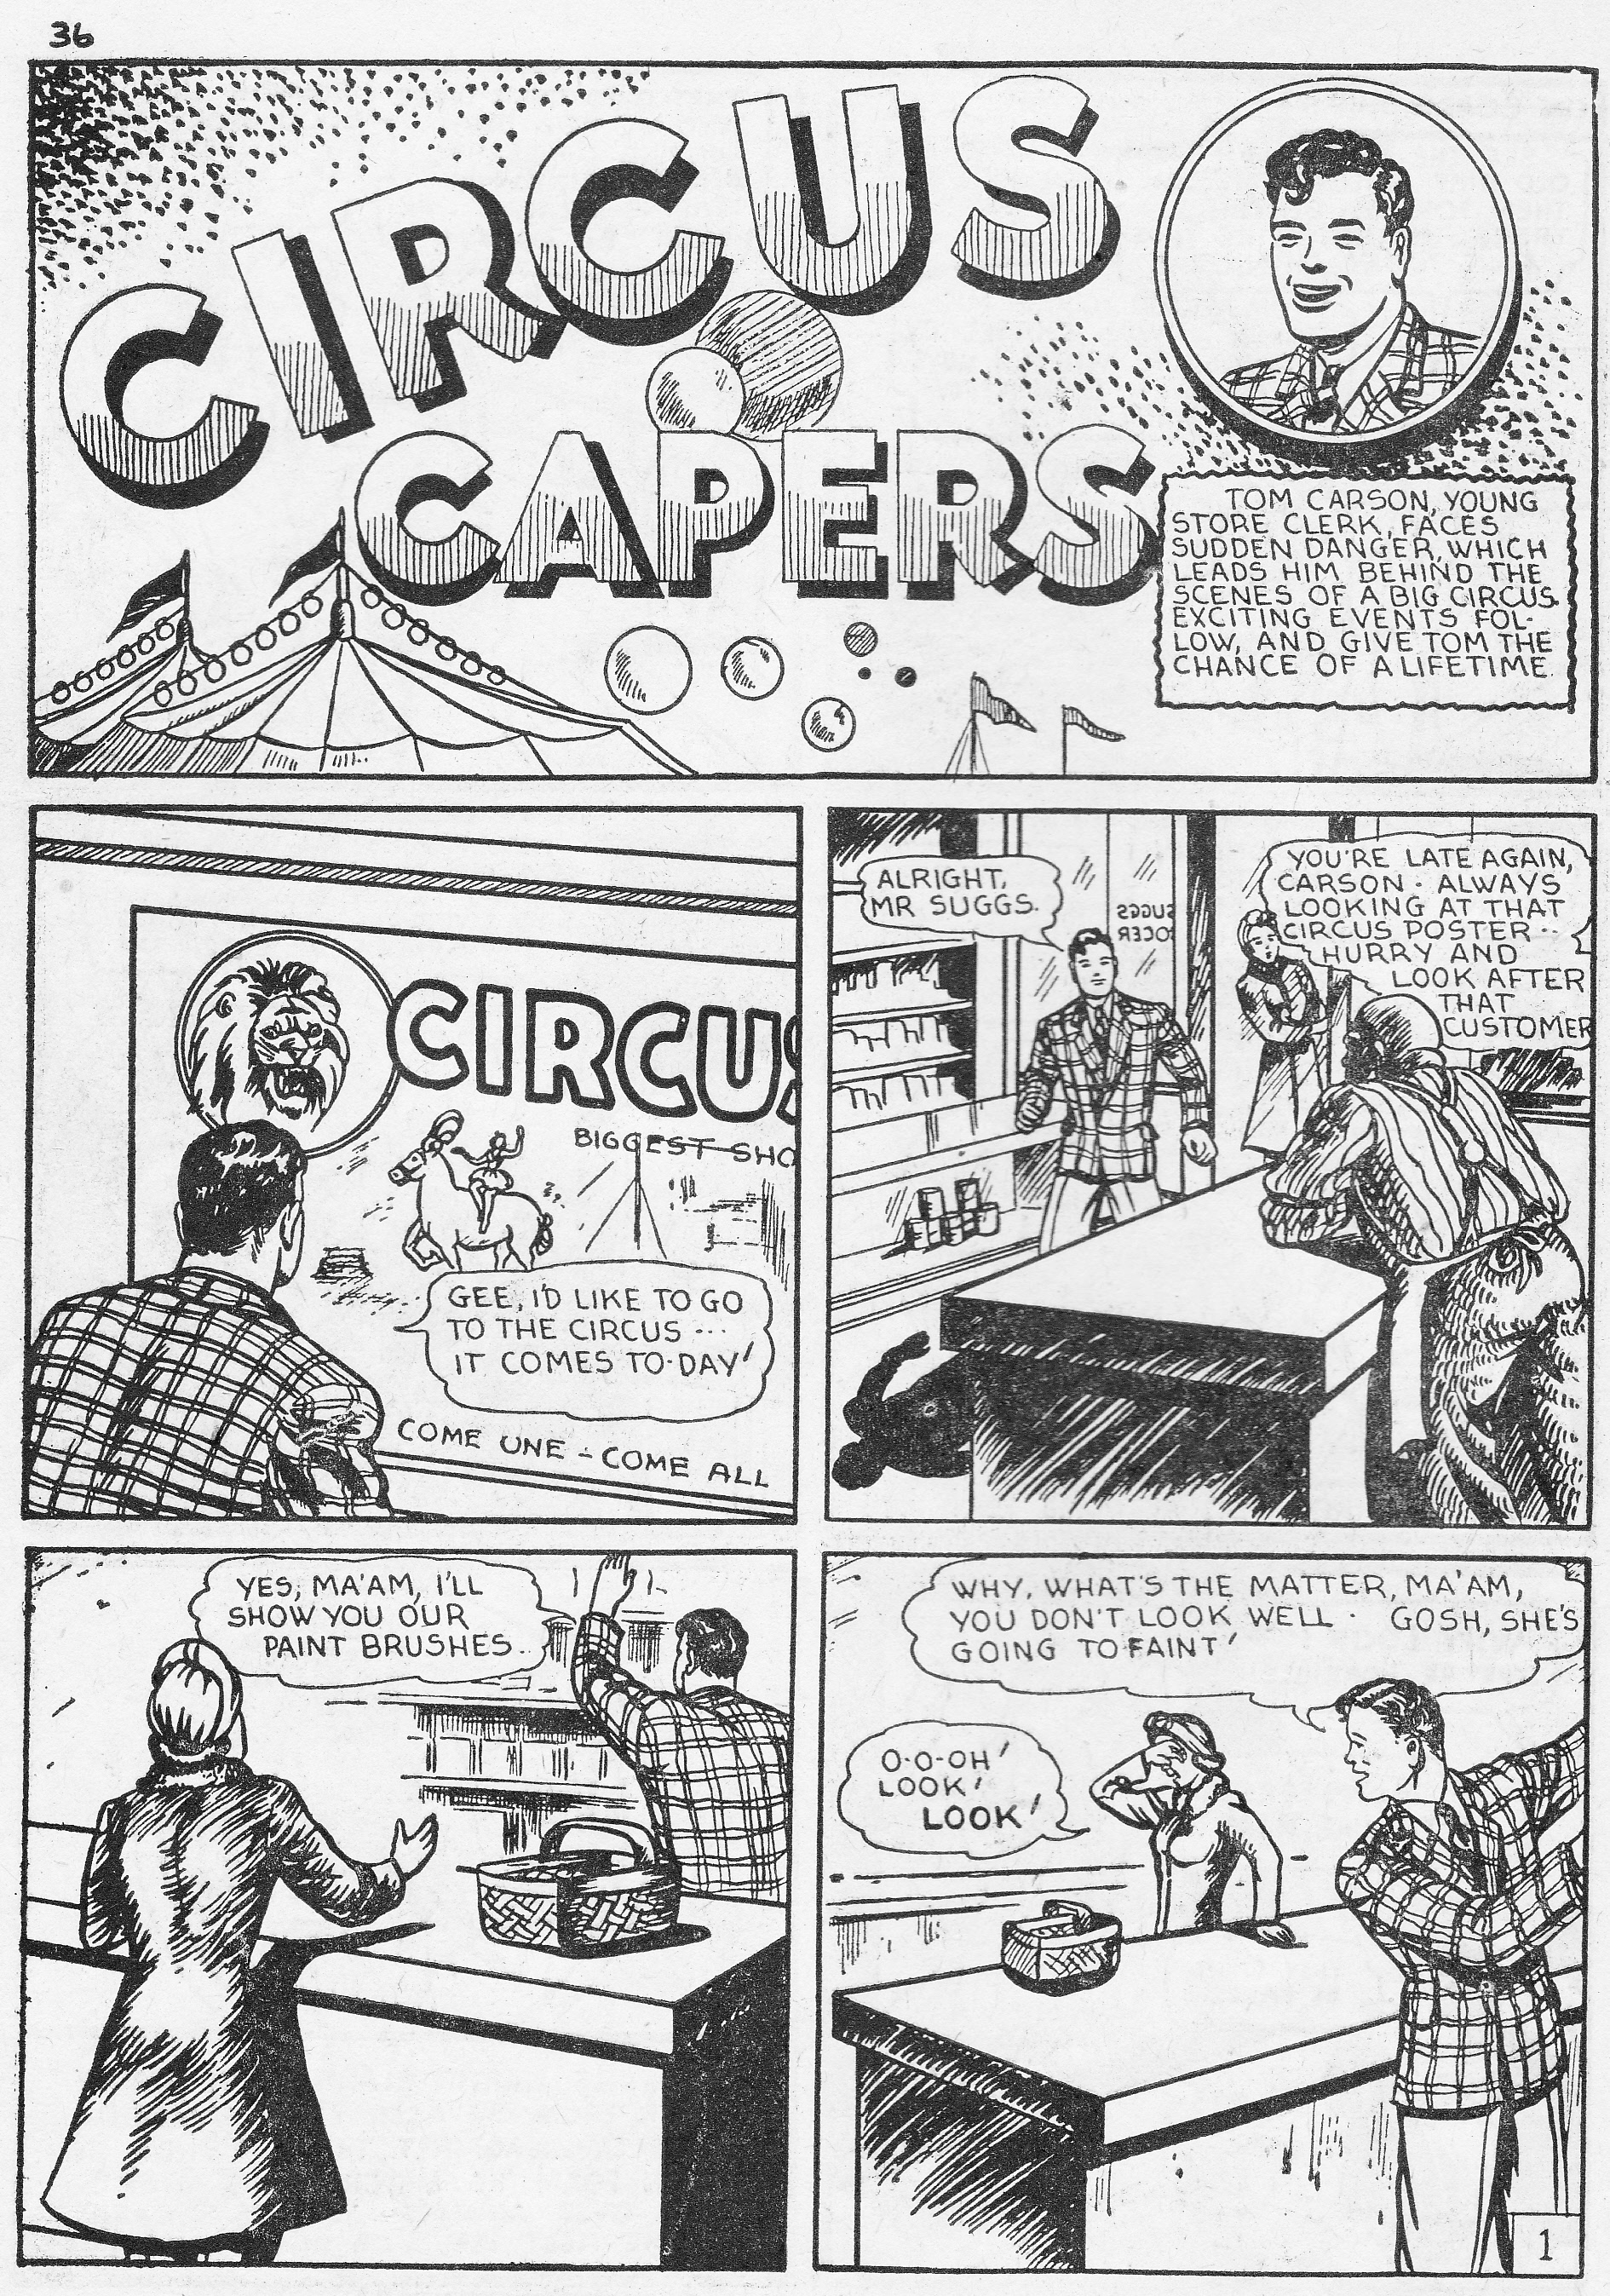 C:\Users\Robert\Documents\CARTOONING ILLUSTRATION ANIMATION\IMAGE CARTOON\IMAGE CARTOON C\CIRCUS CAPERS, 3 Aces Comics, 1-2, Jan,Feb 1942, 36.jpg